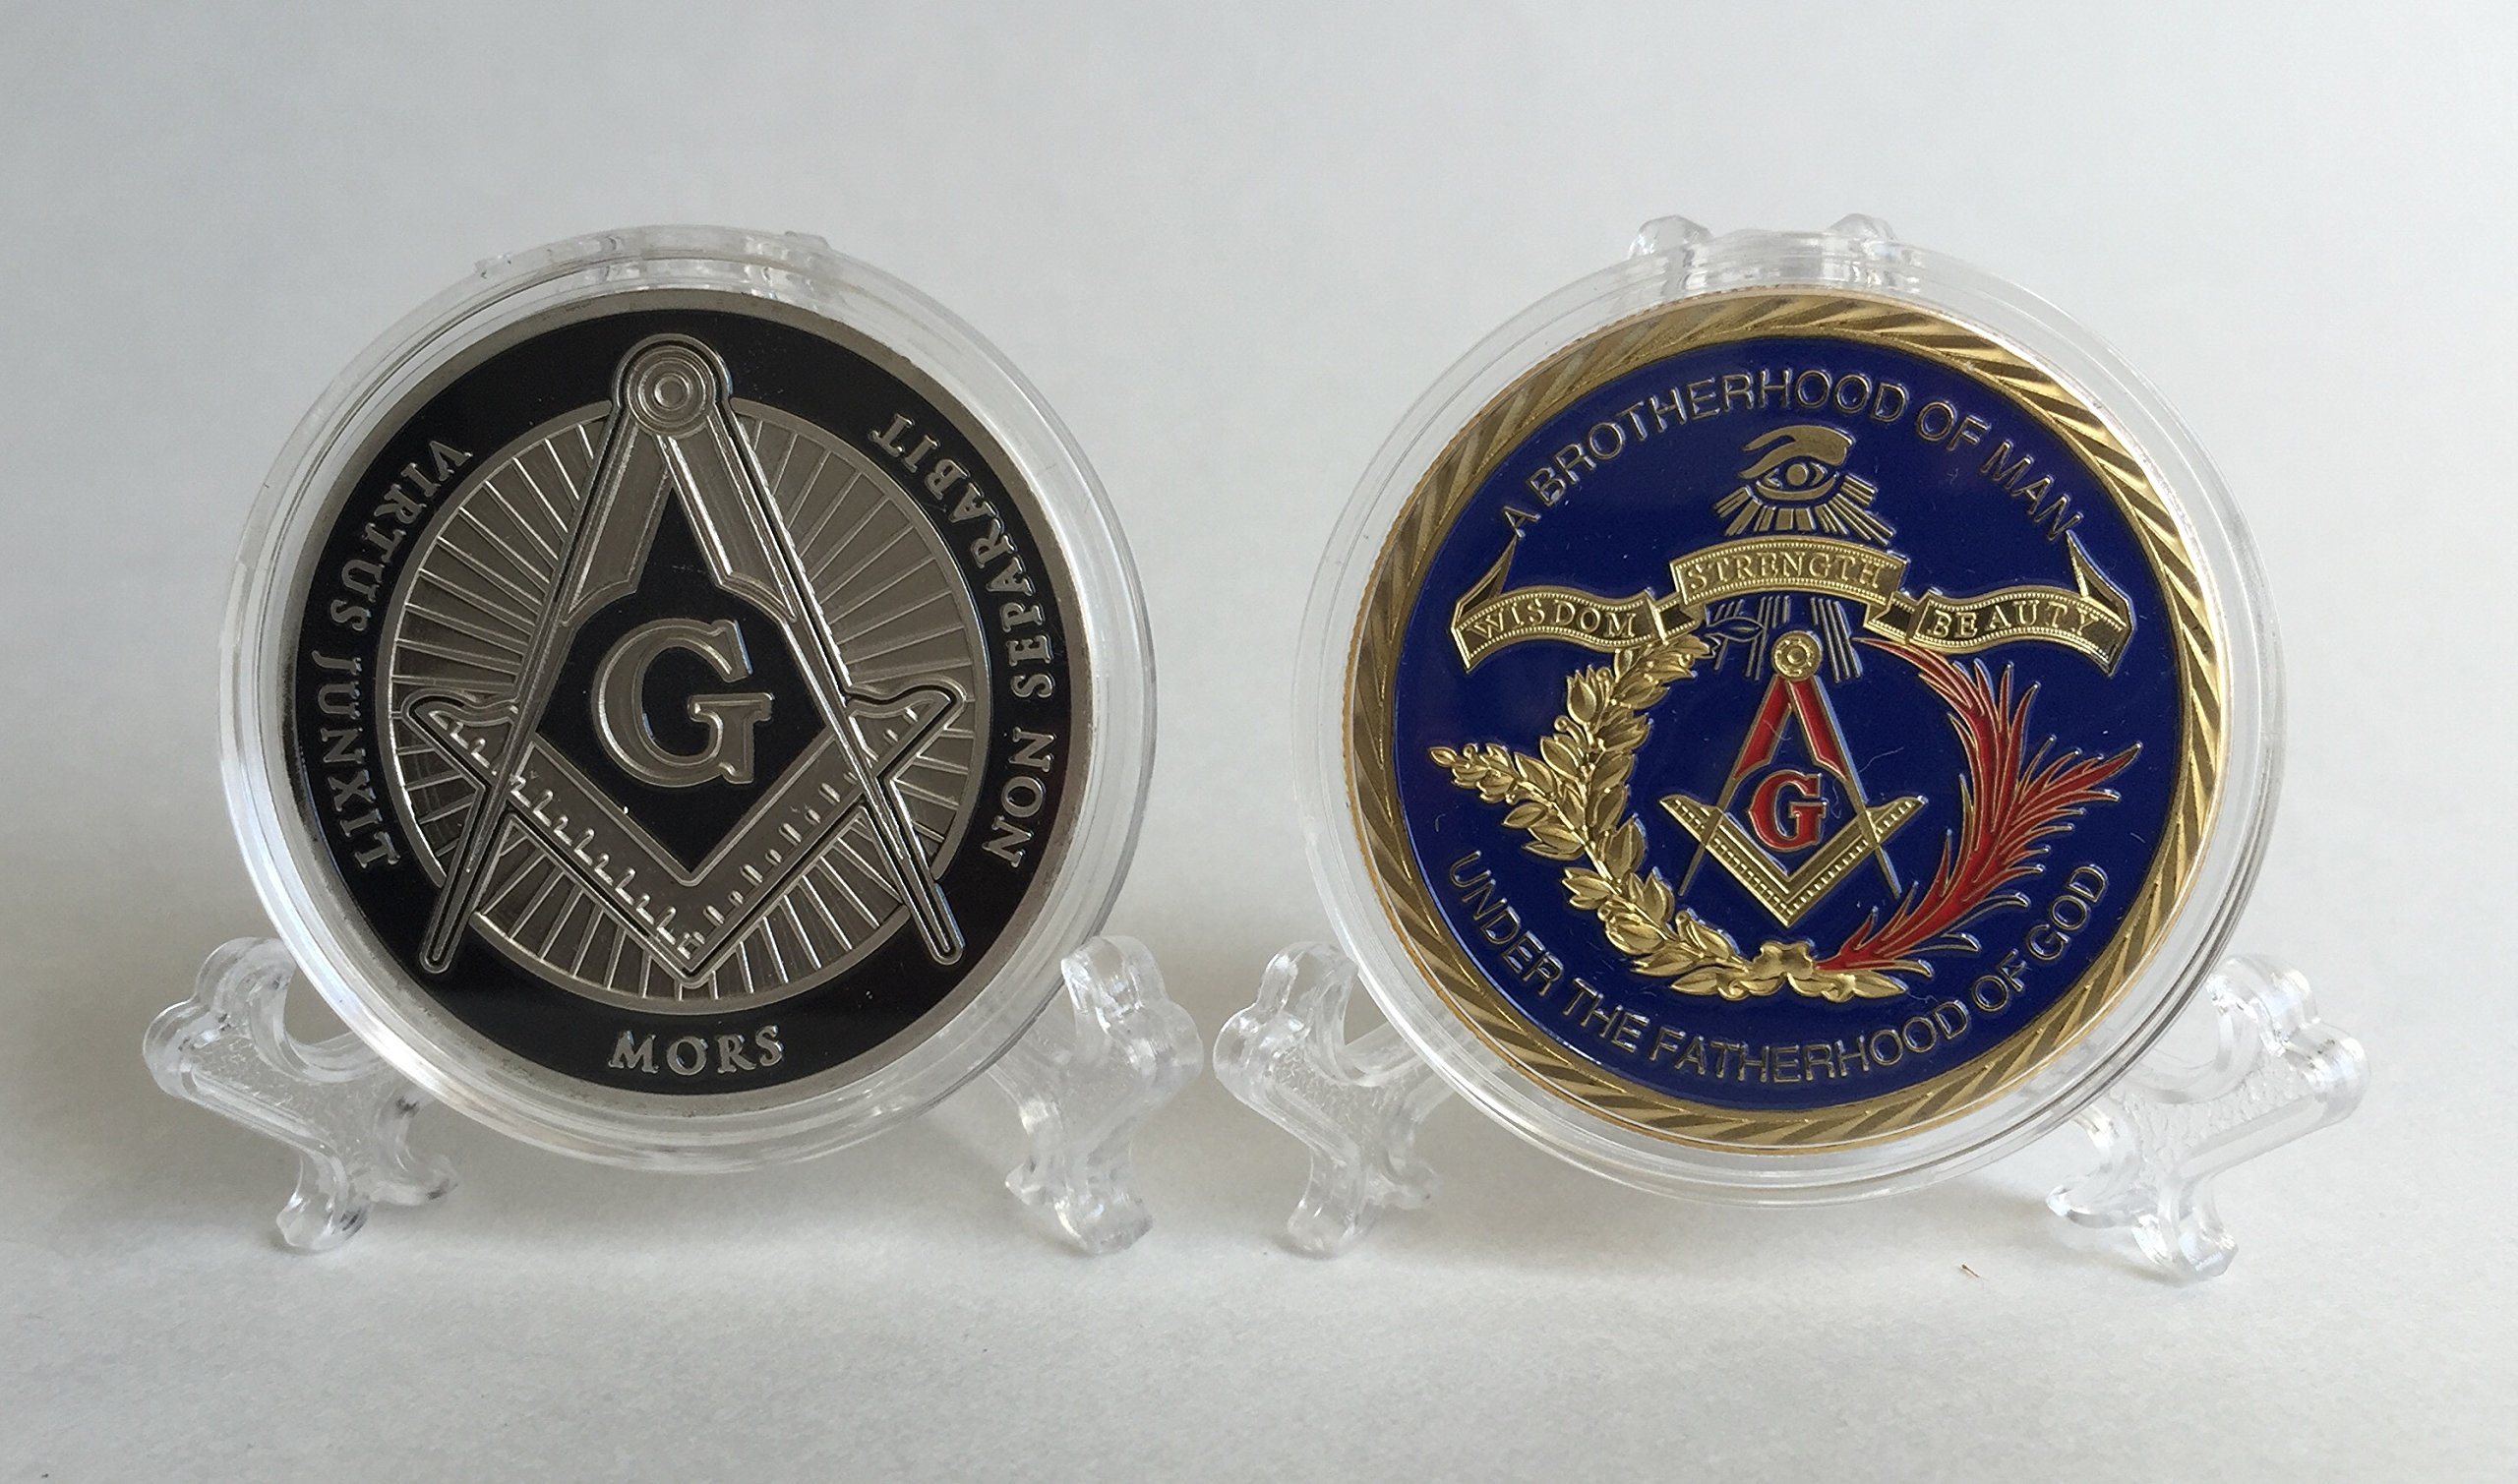 Set of 2 (1 silver, 1 gold color with color) Freemason Collectible Challenge Coins by Lucky Donk, Poker Card Guard, Golf Ball Marker, paperweight